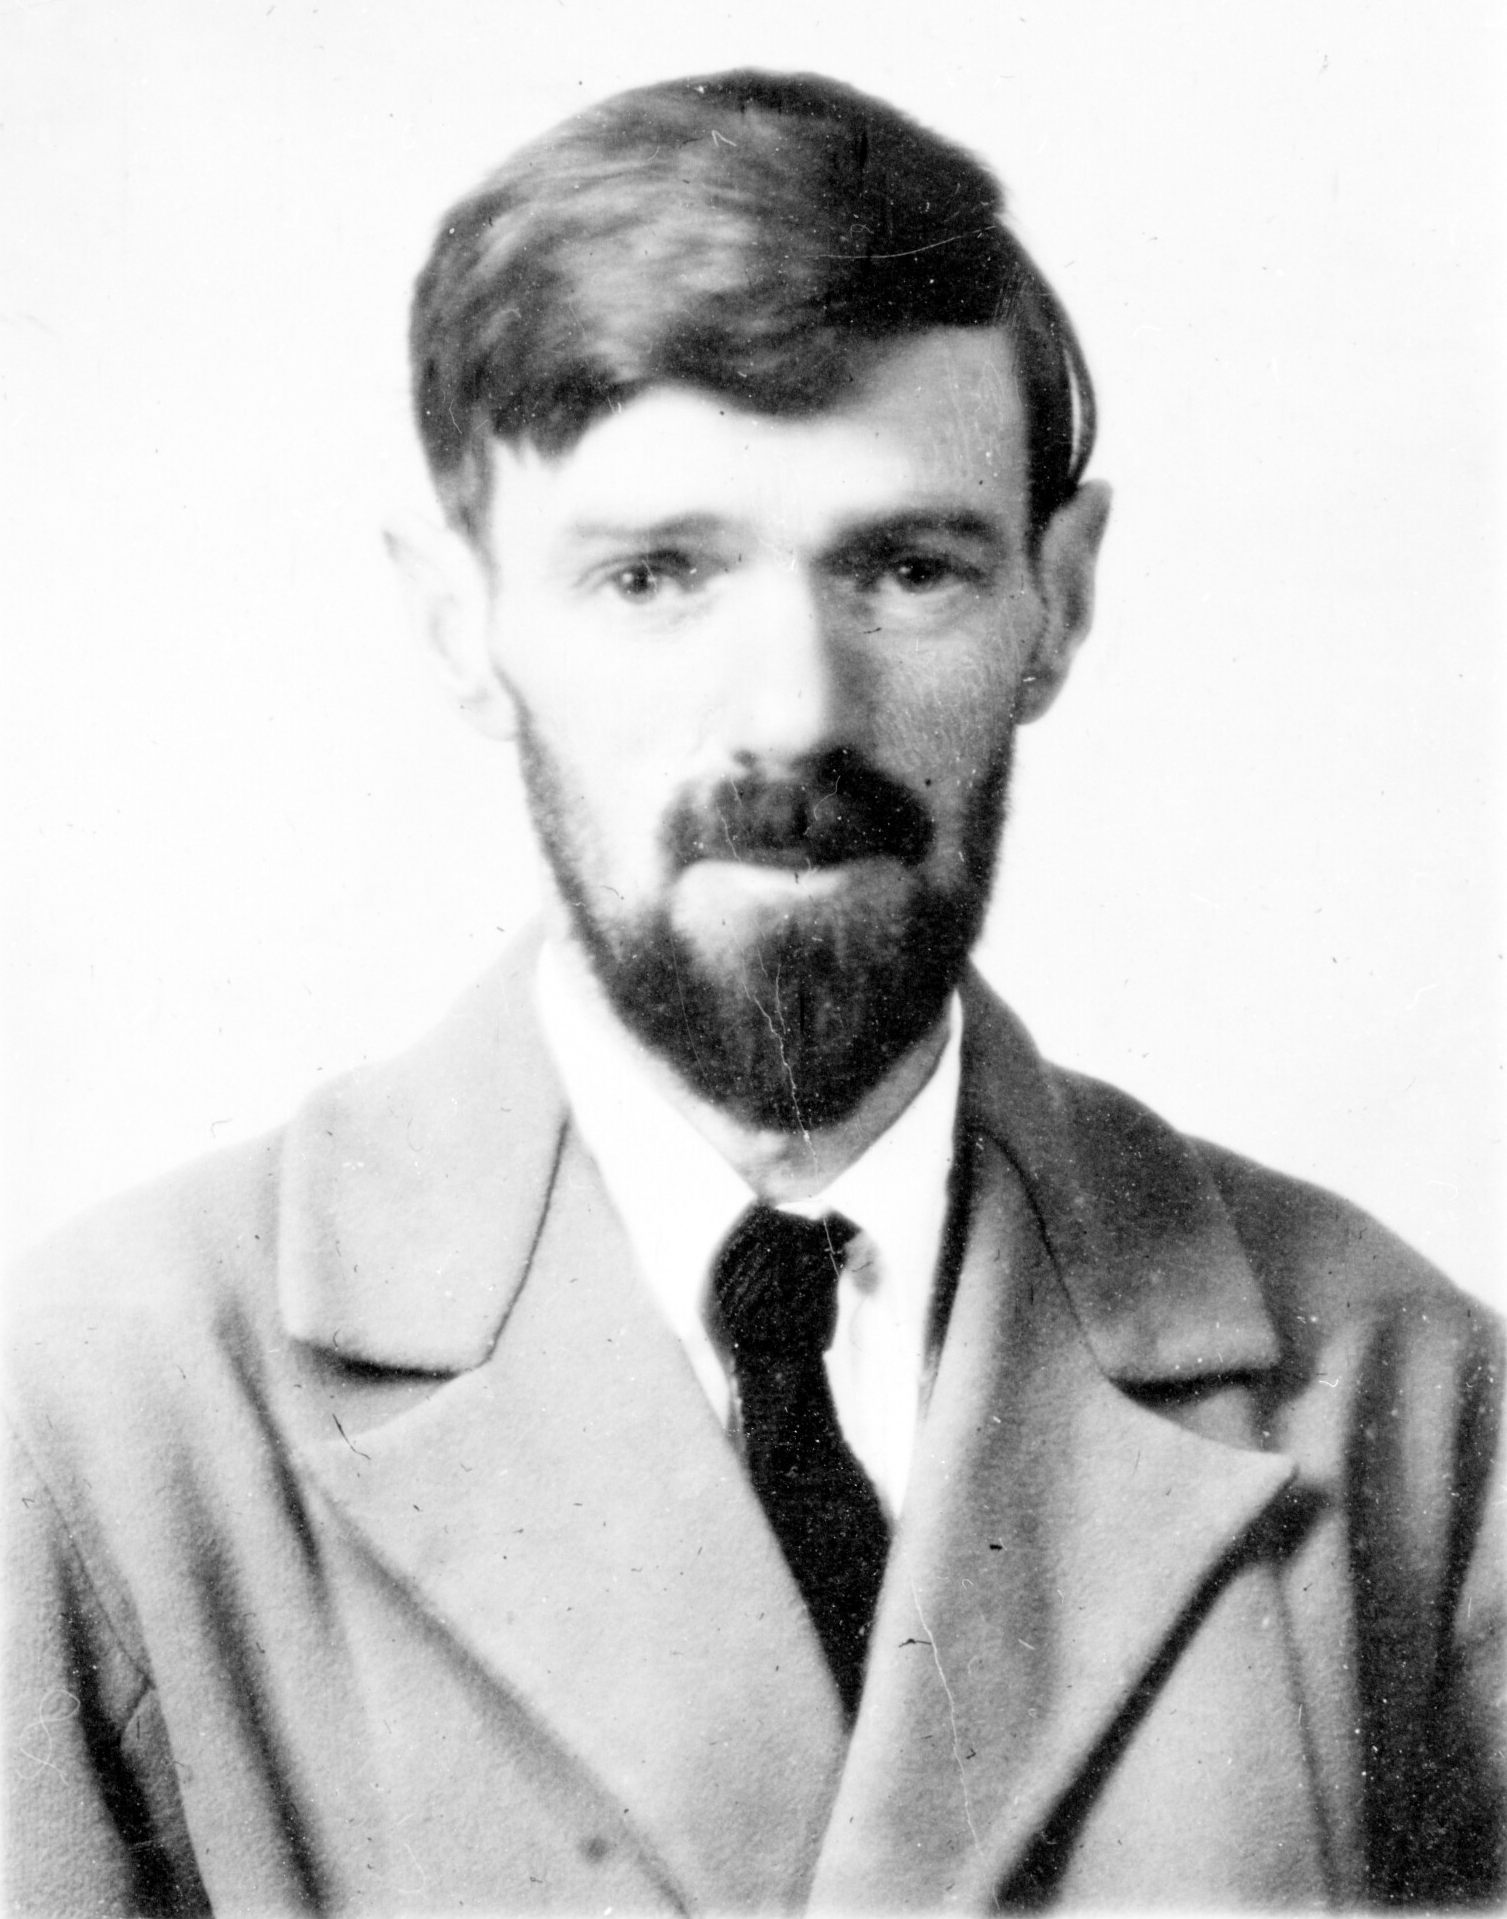 d h lawrence passport photograph jpg how to write an essay about someone you admire